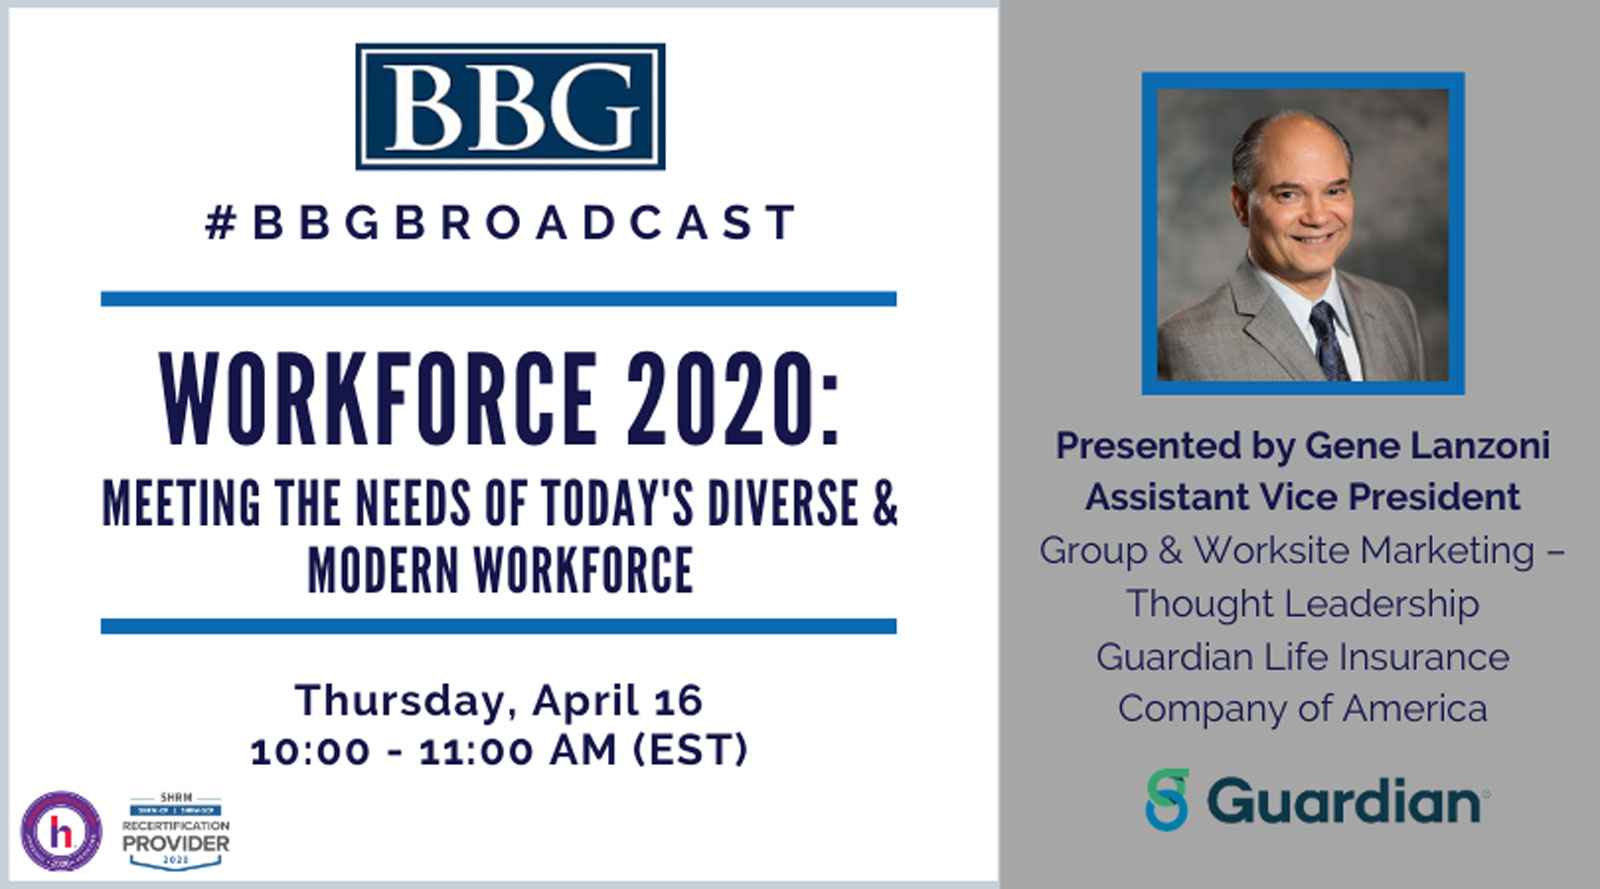 BBG Workforce 2020 webinar flyer